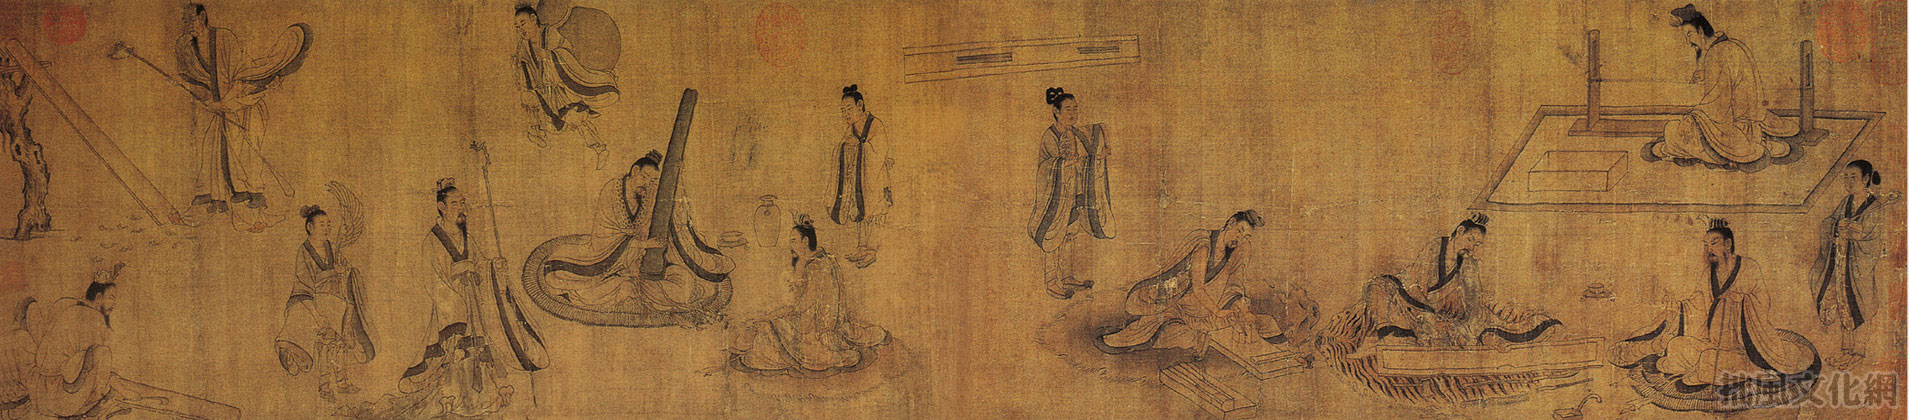 http://upload.wikimedia.org/wikipedia/commons/7/79/Gu_Kaizhi_%28attributed%29._Making_a_Qin._%2829%2C4x130cm%29_National_Palace_Museum%2C_Beijing..jpg